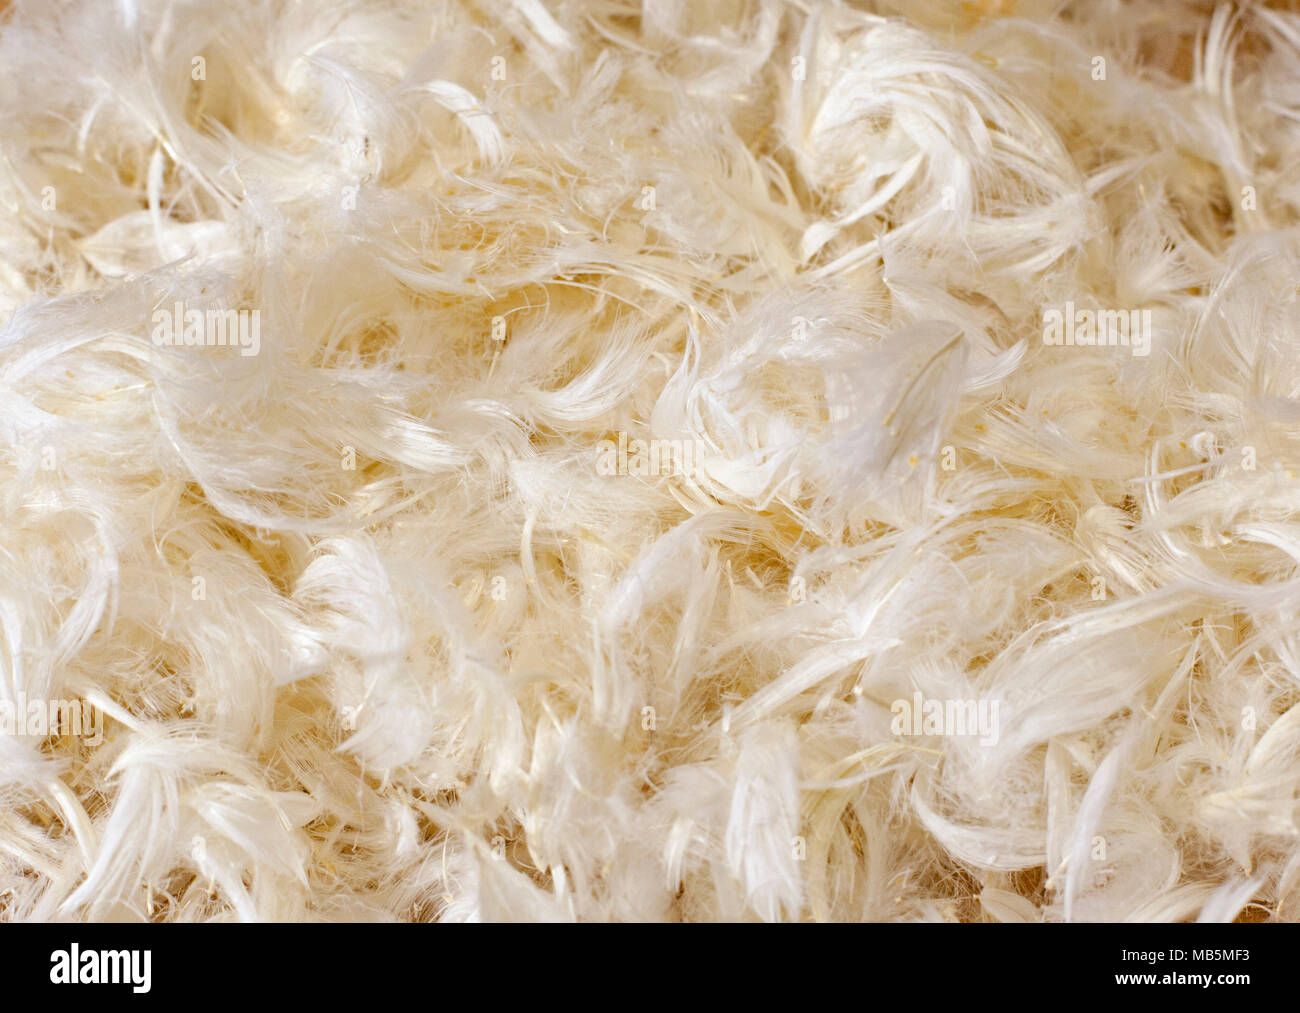 Still life of a soft, fluffy pile of Goose down feathers - Stock Image